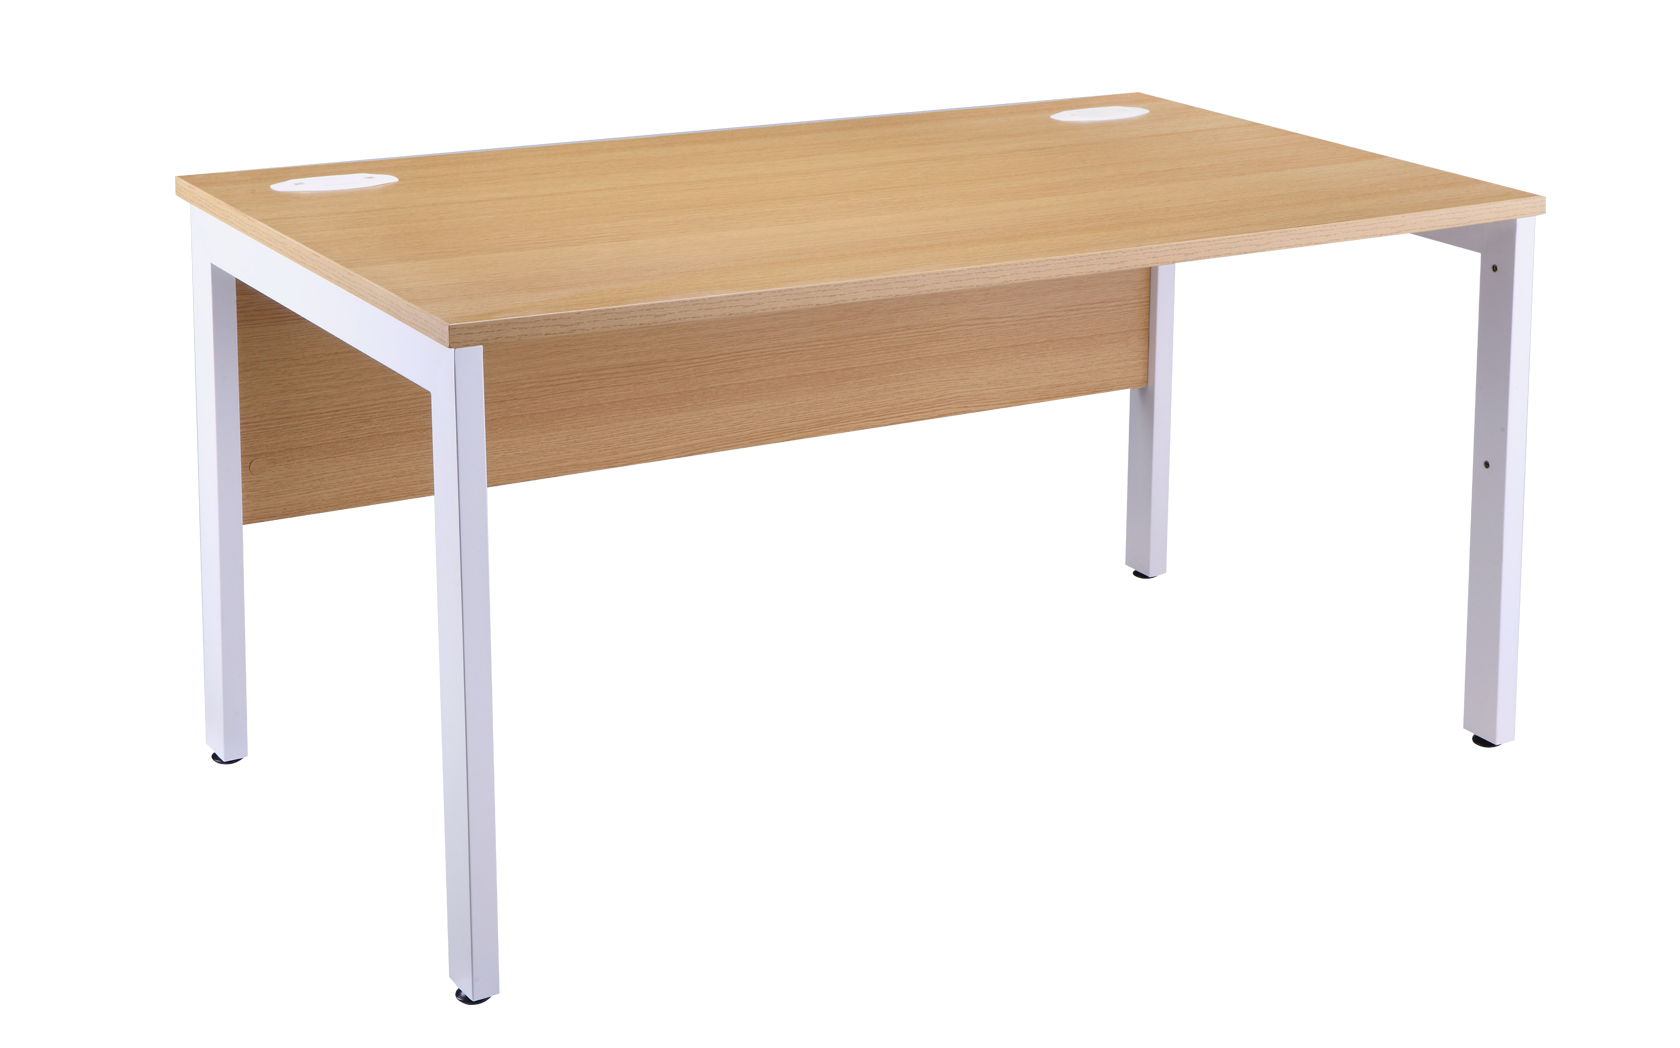 Bench Computer It Office Desk Oak And White800mm Deep Specialist Furniture Contracts